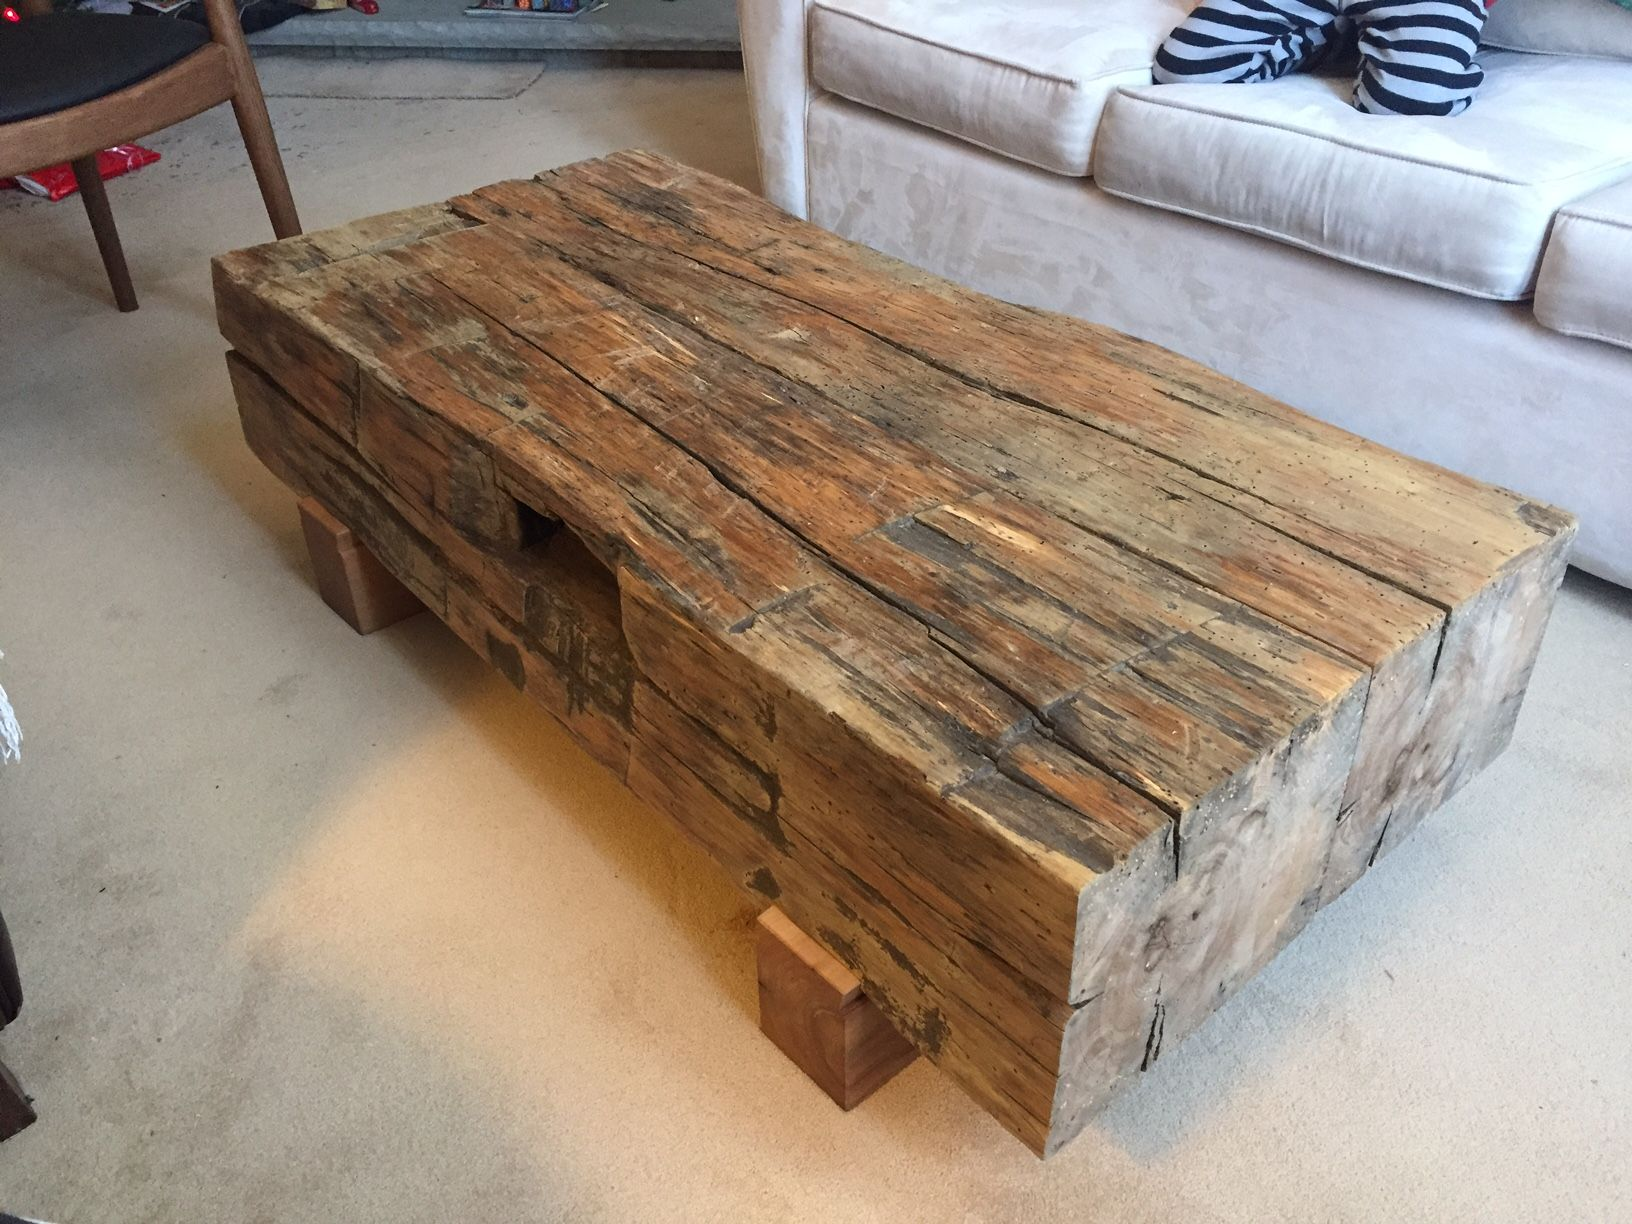 Reclaimed Pier Timber Coffee Table Http Ift Tt 2h4gfih Recycled Timber Furniture Coffee Table Wood Bench Outdoor